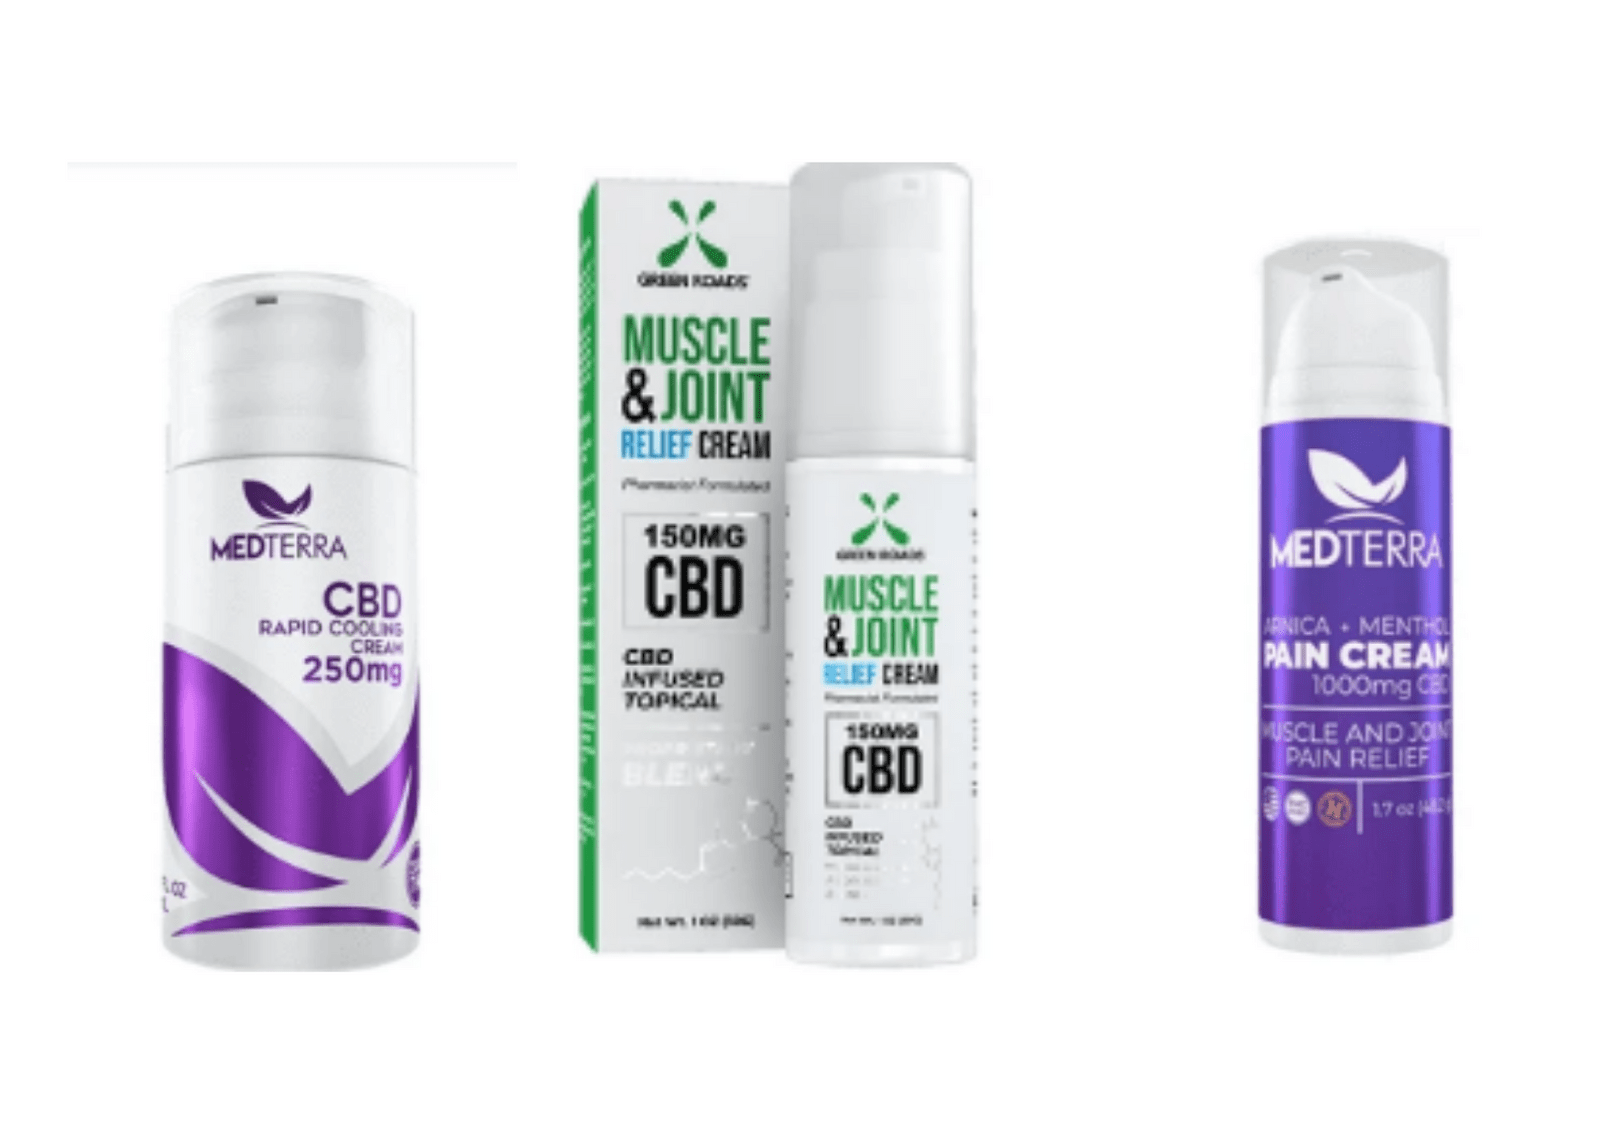 Medical Cannabis For Muscle And Joint Relief